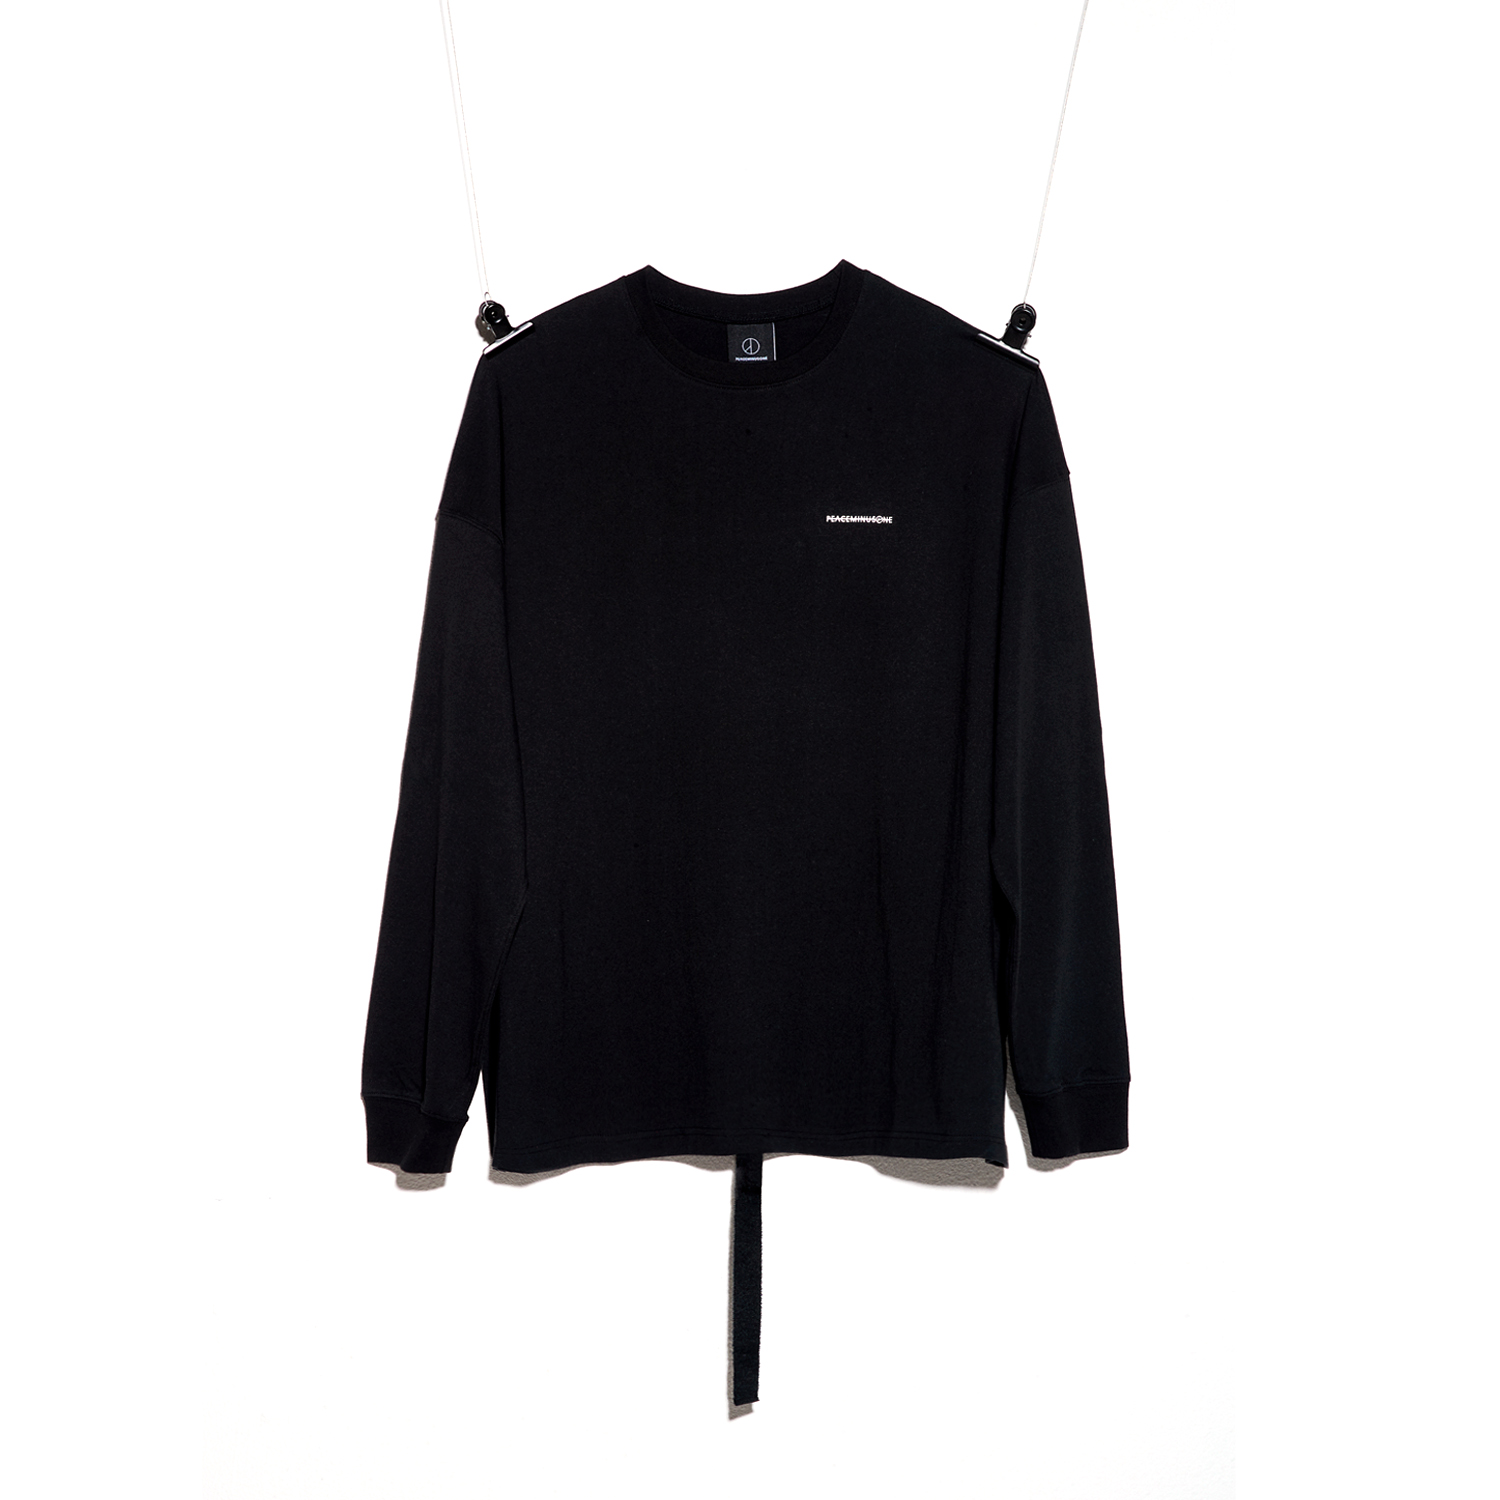 PEACEMINUSONE X FRAGMENT DESIGN. LONG SLEEVE T-SHIRTS #1